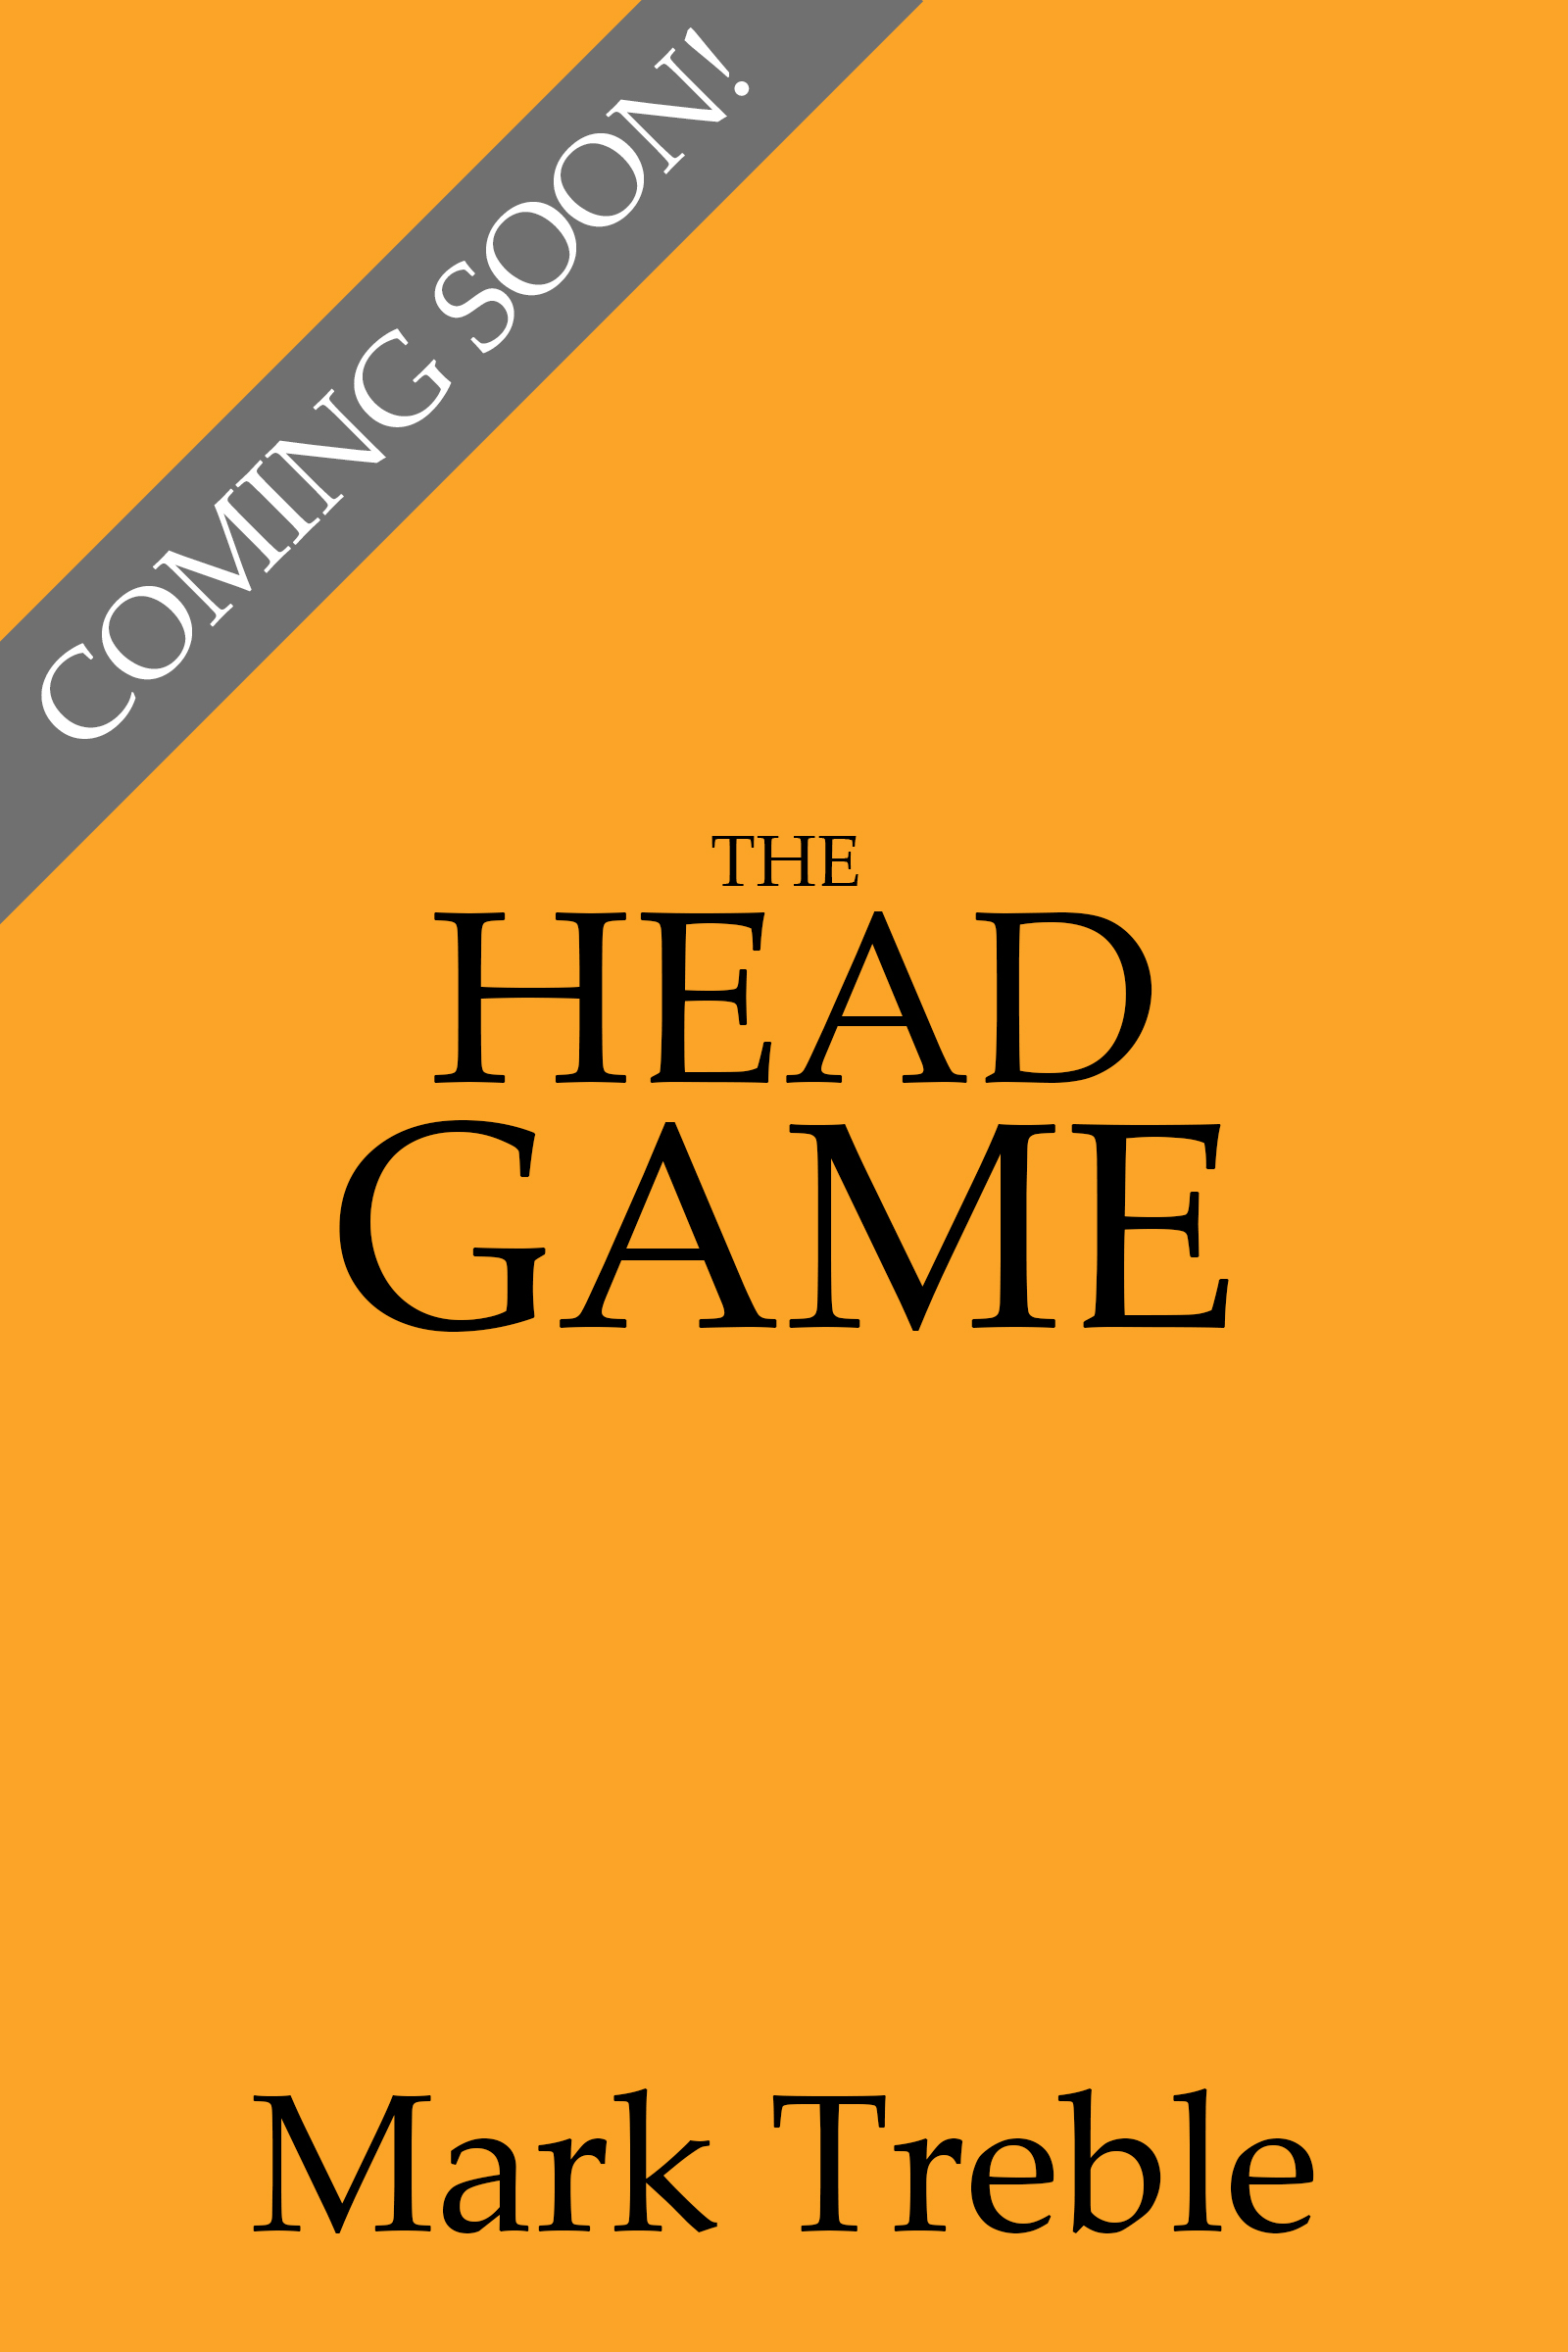 The Head Game - Coming Soon!